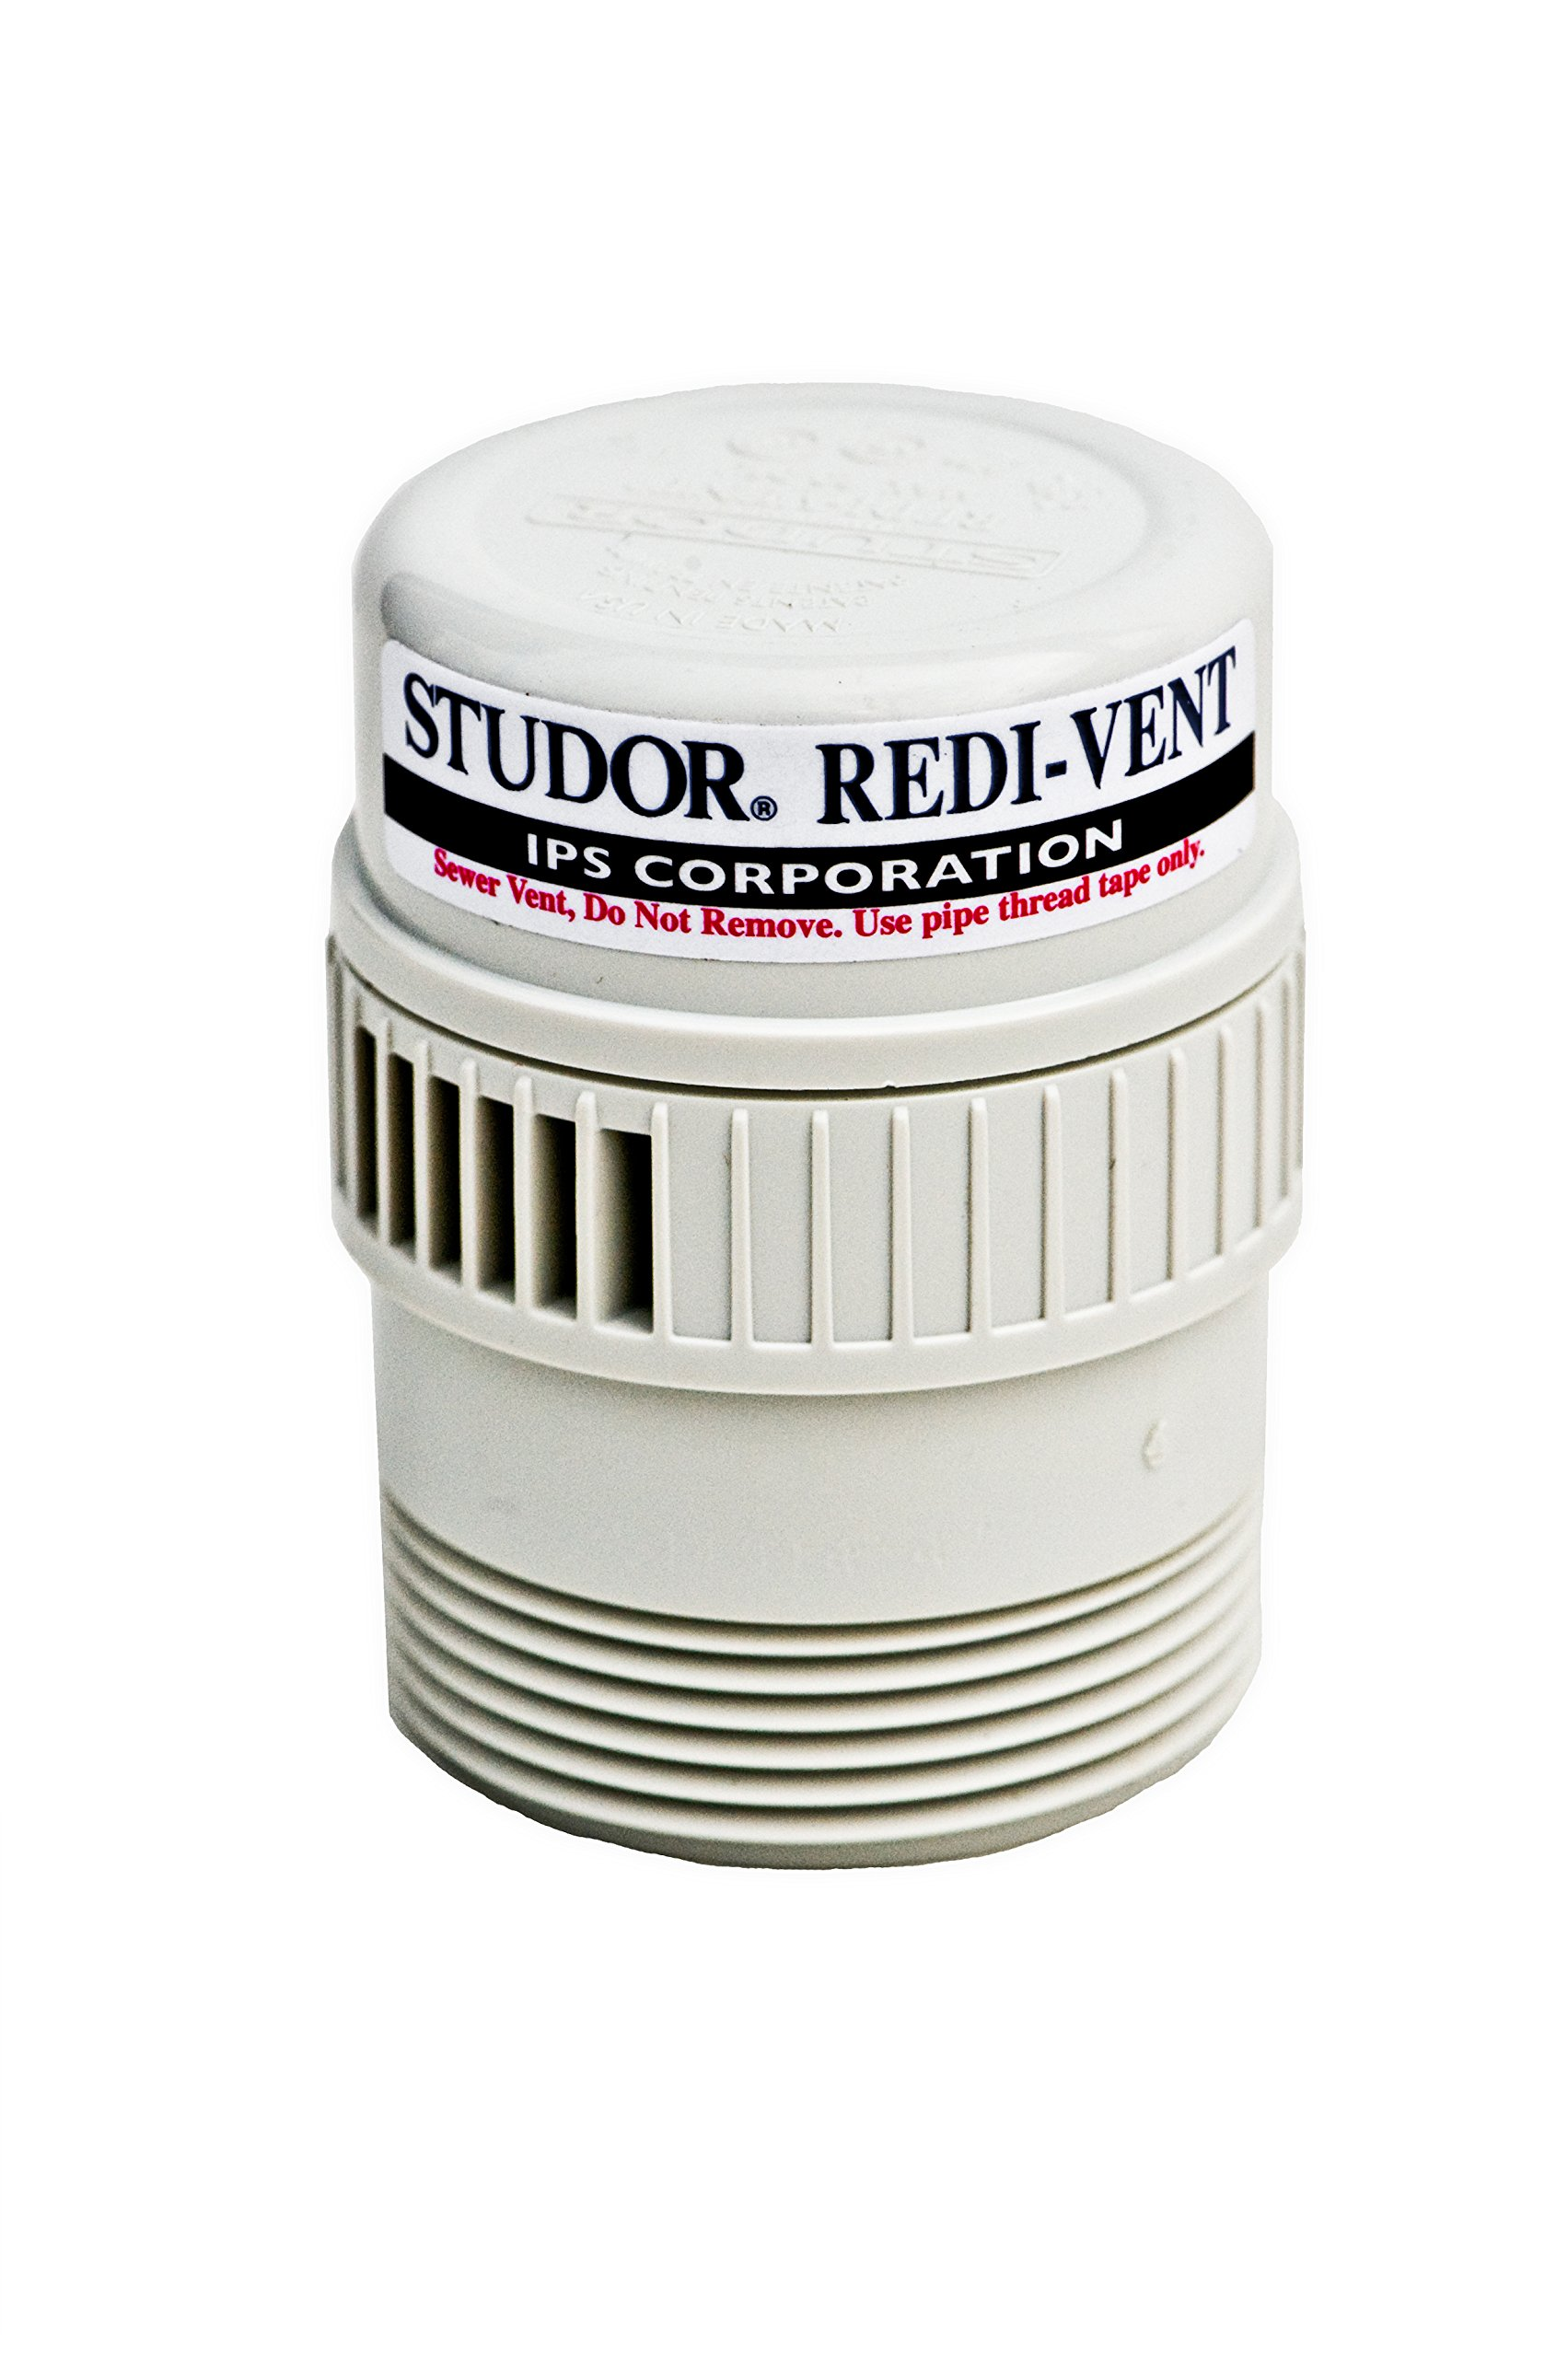 Studor 20349 REDI-VENT Air Admittance Valve, 1-1/2'' or 2'' ABS Adapter, White